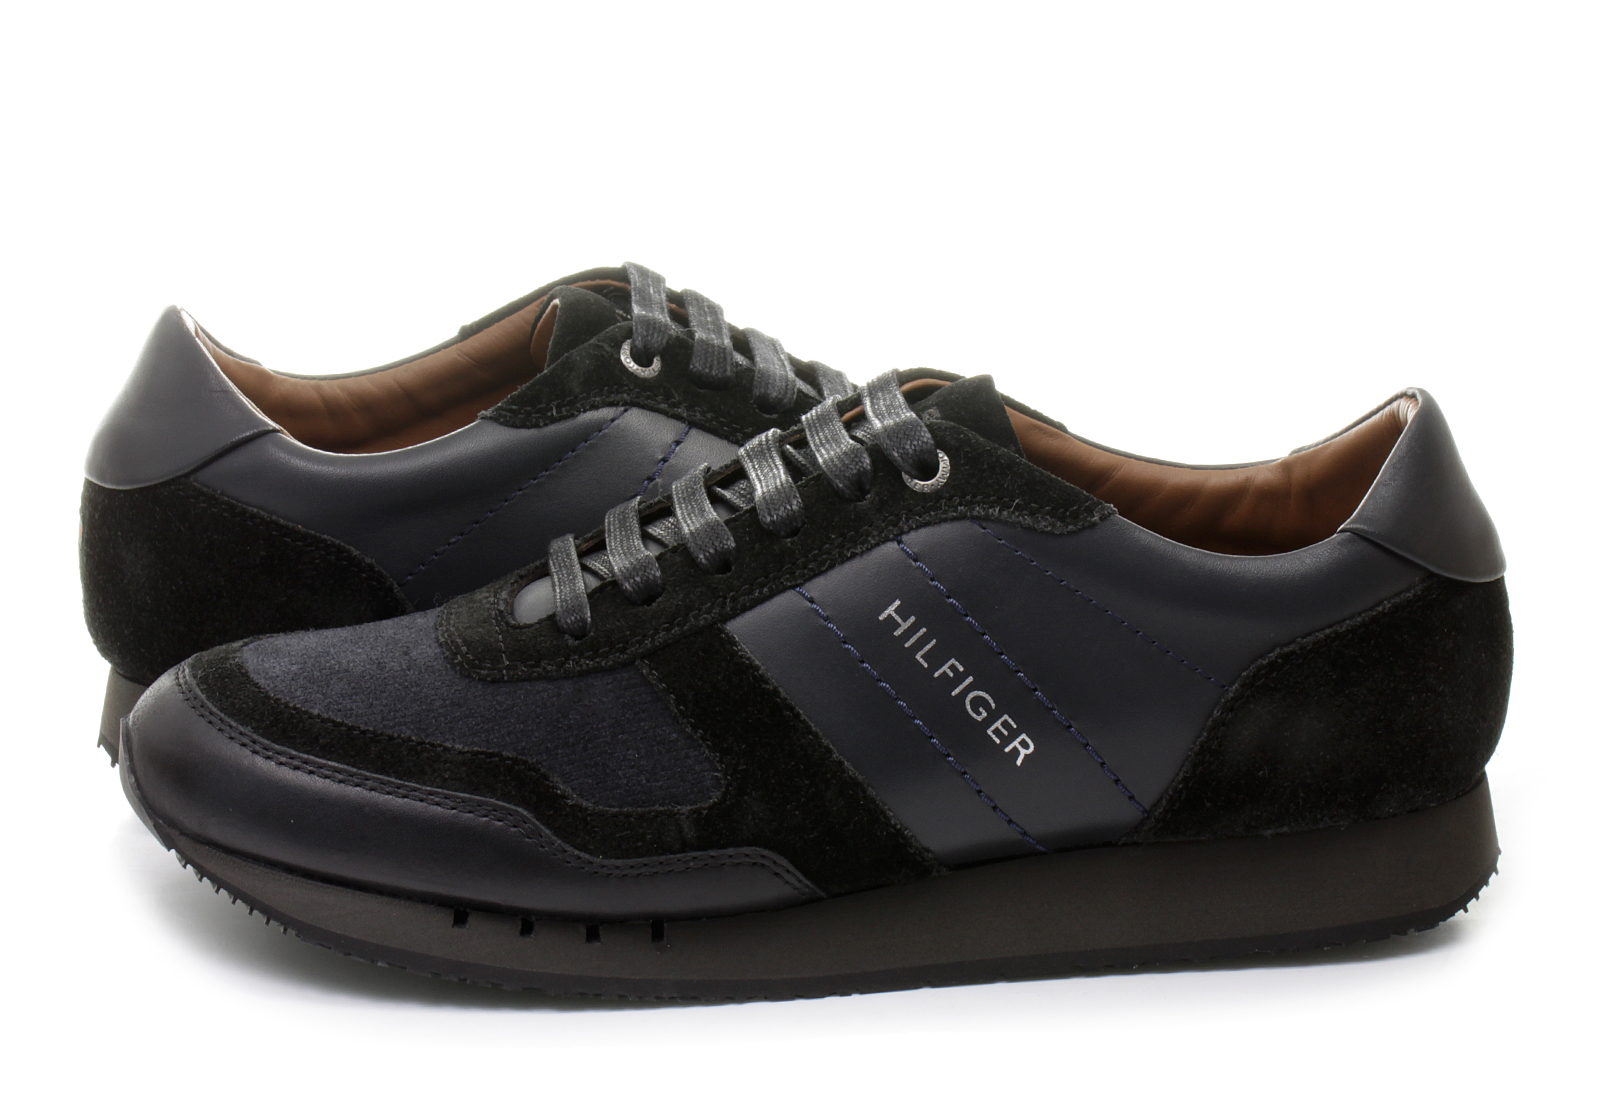 tommy hilfiger shoes mac 2 17s 0338 903 online shop for sneakers shoes and boots. Black Bedroom Furniture Sets. Home Design Ideas